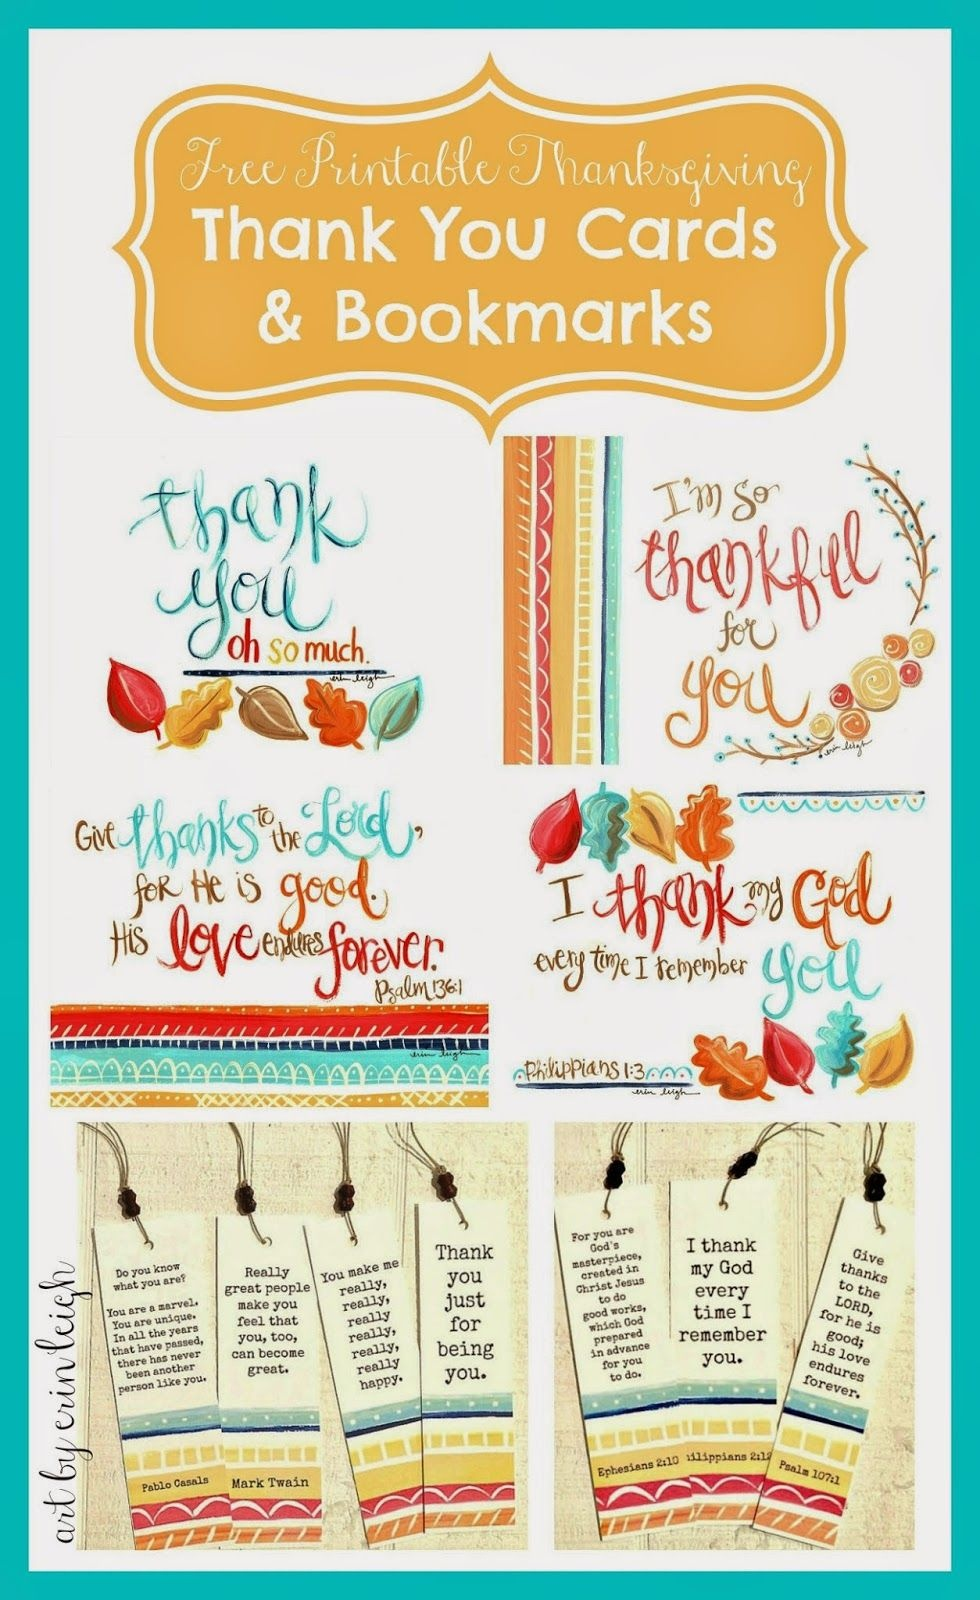 Say Thank You! Free Thanksgiving Printable Thank You Cards And - Free Printable Volunteer Thank You Cards